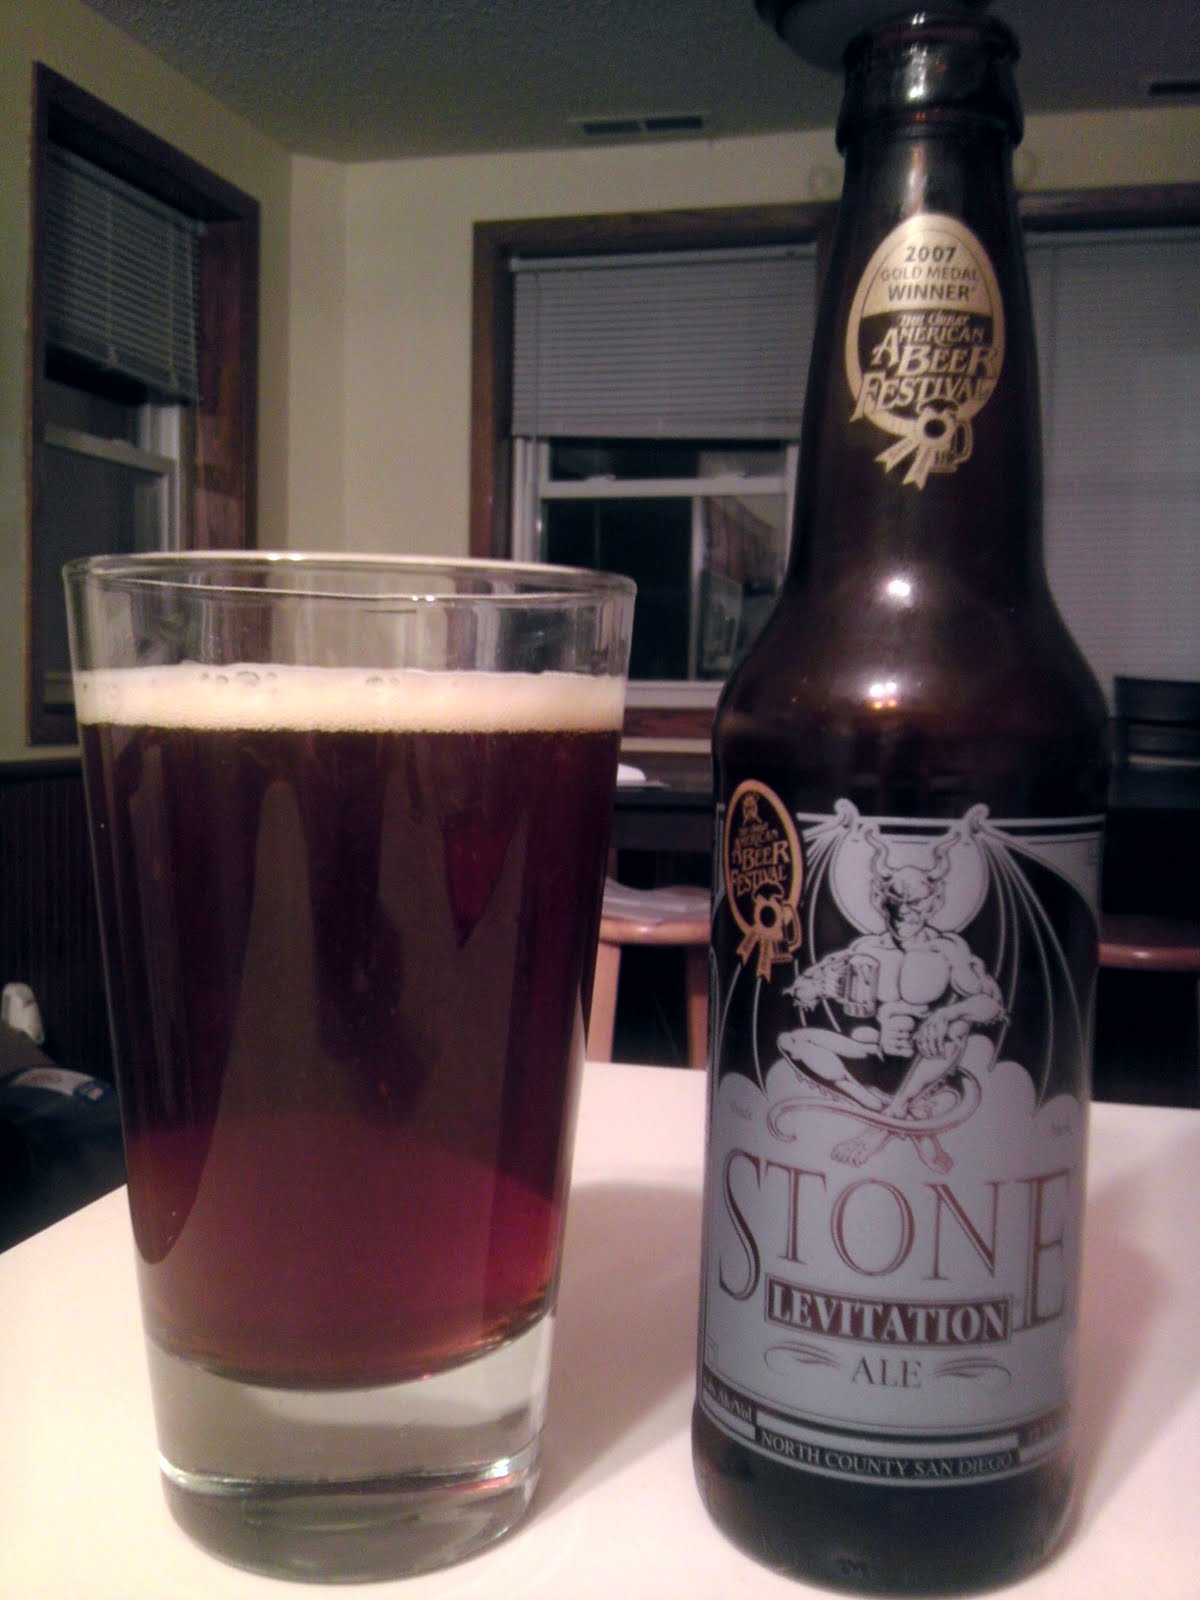 Stone Levitation Ale : Late night beeradvocate tuesday page